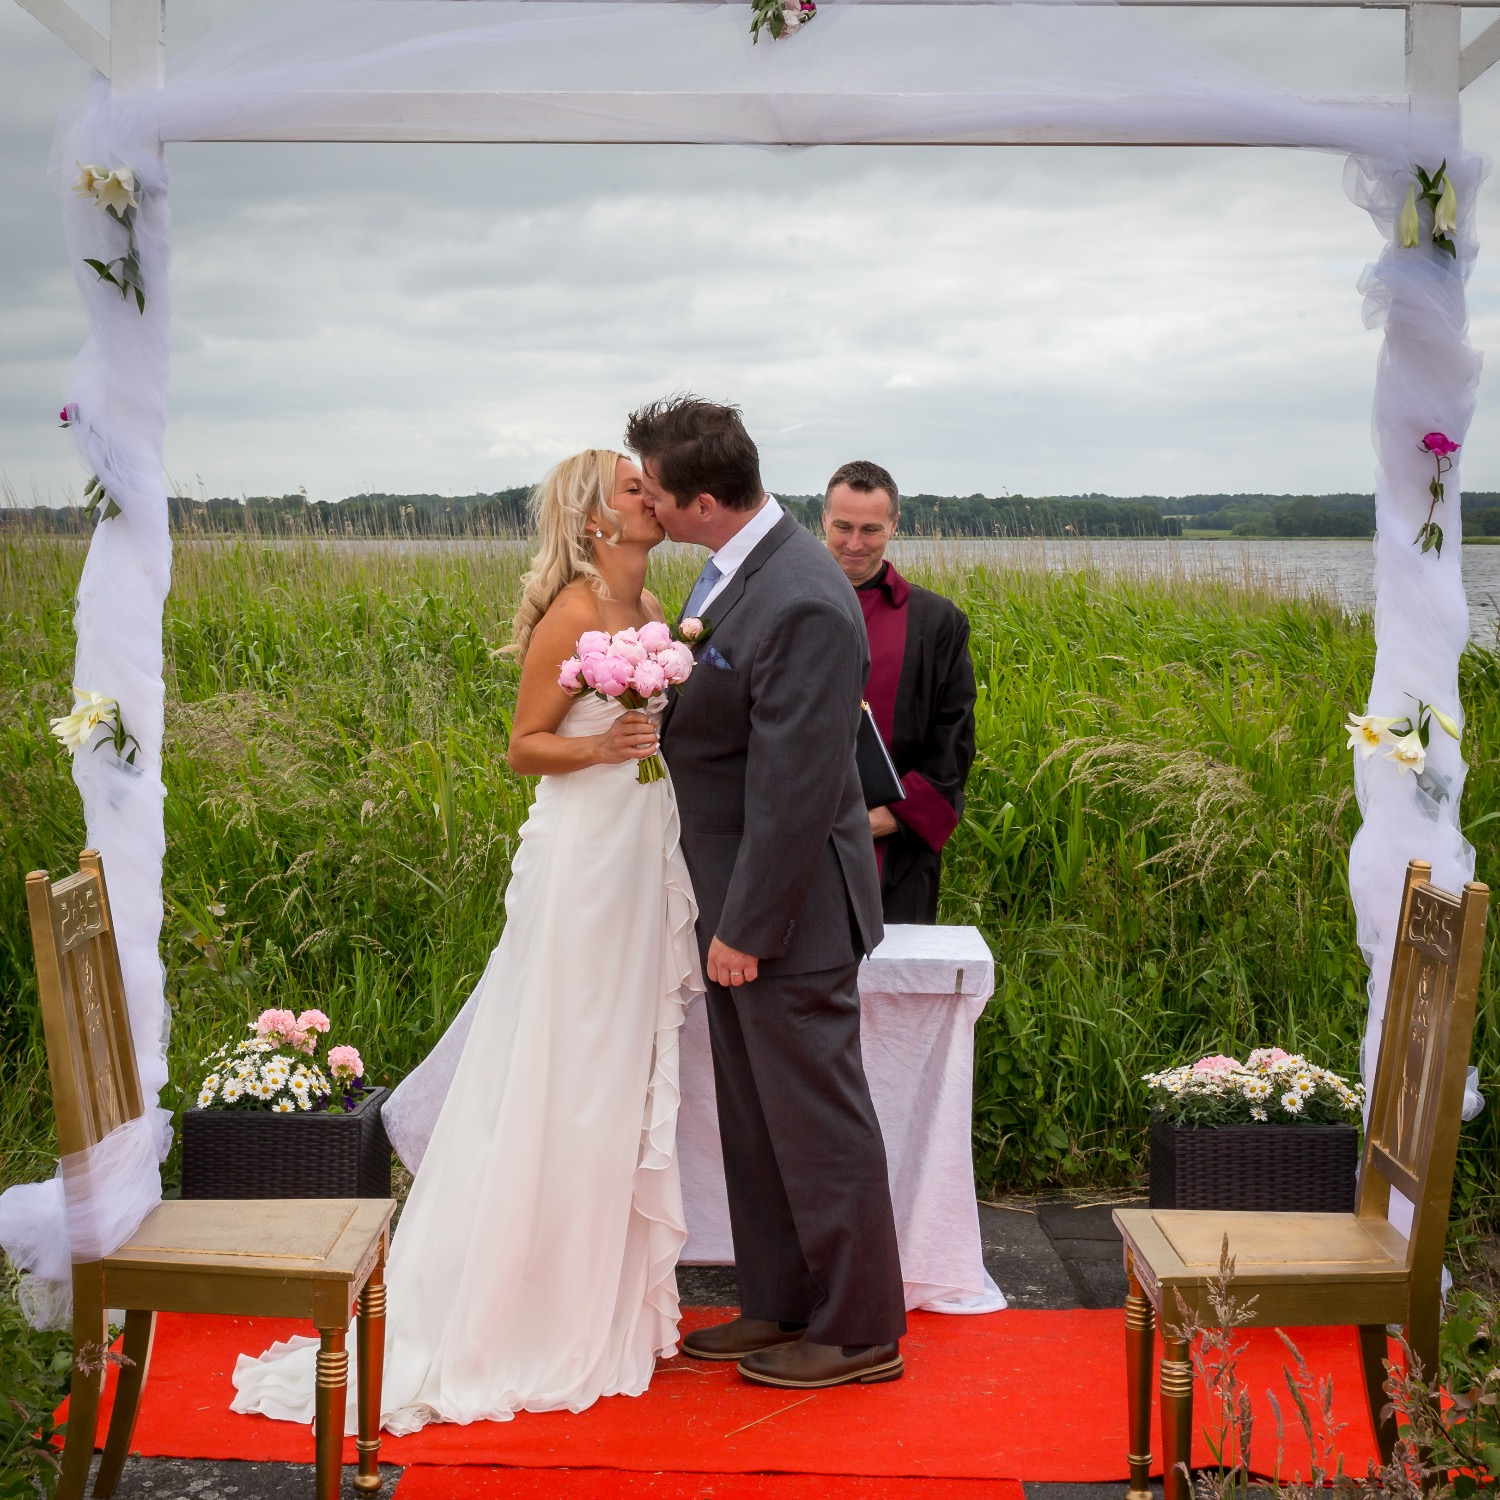 Ceremony by the water bank